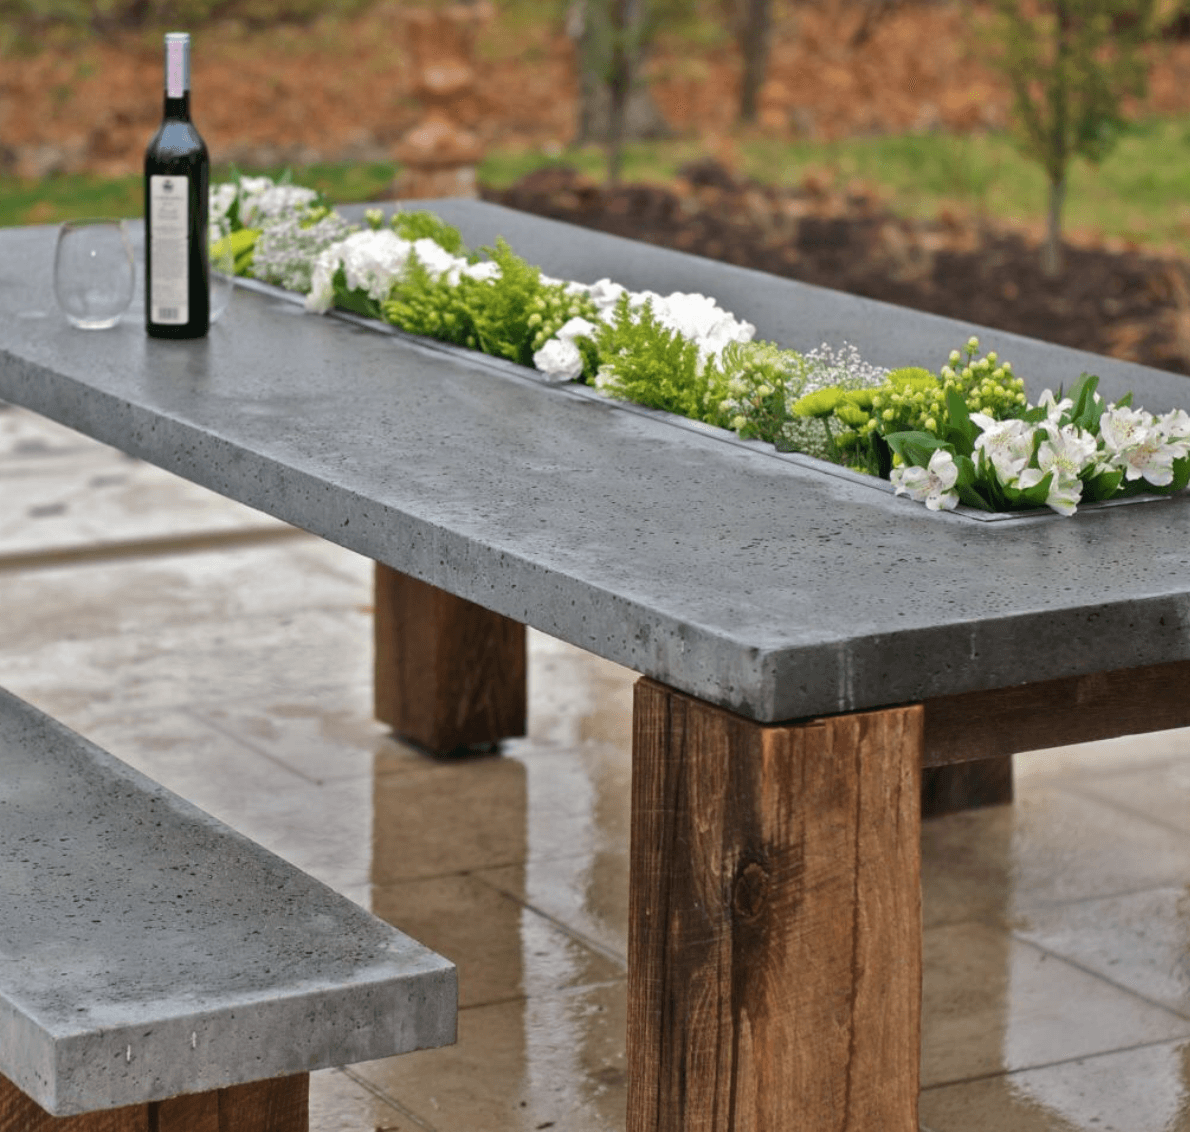 25+ Brilliant DIY Outdoor Dining Table Ideas and Projects ...